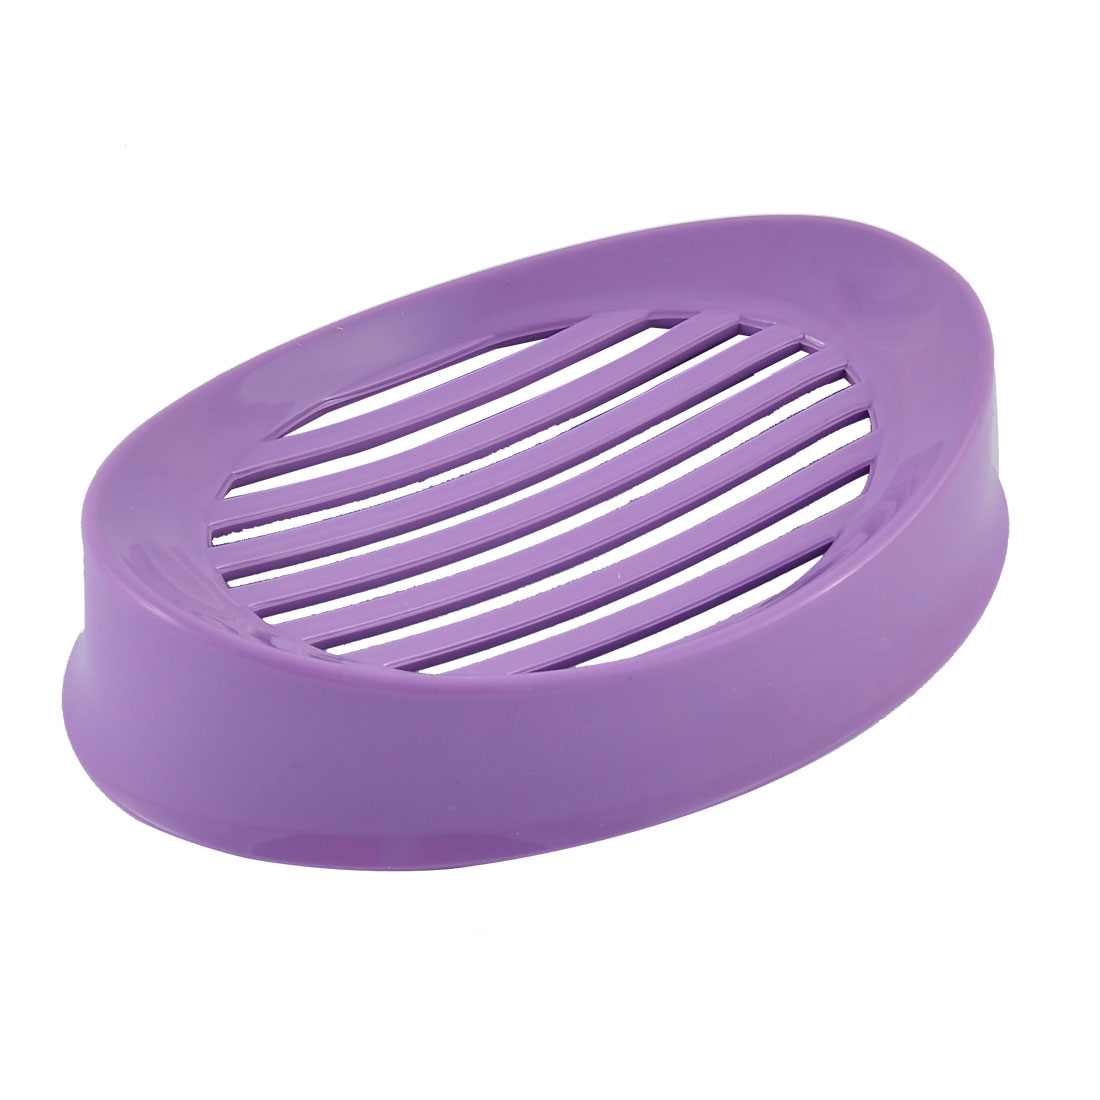 Uxcell Household Bathroom Plastic Hollow Out Soap Holder Container Box Case Purple